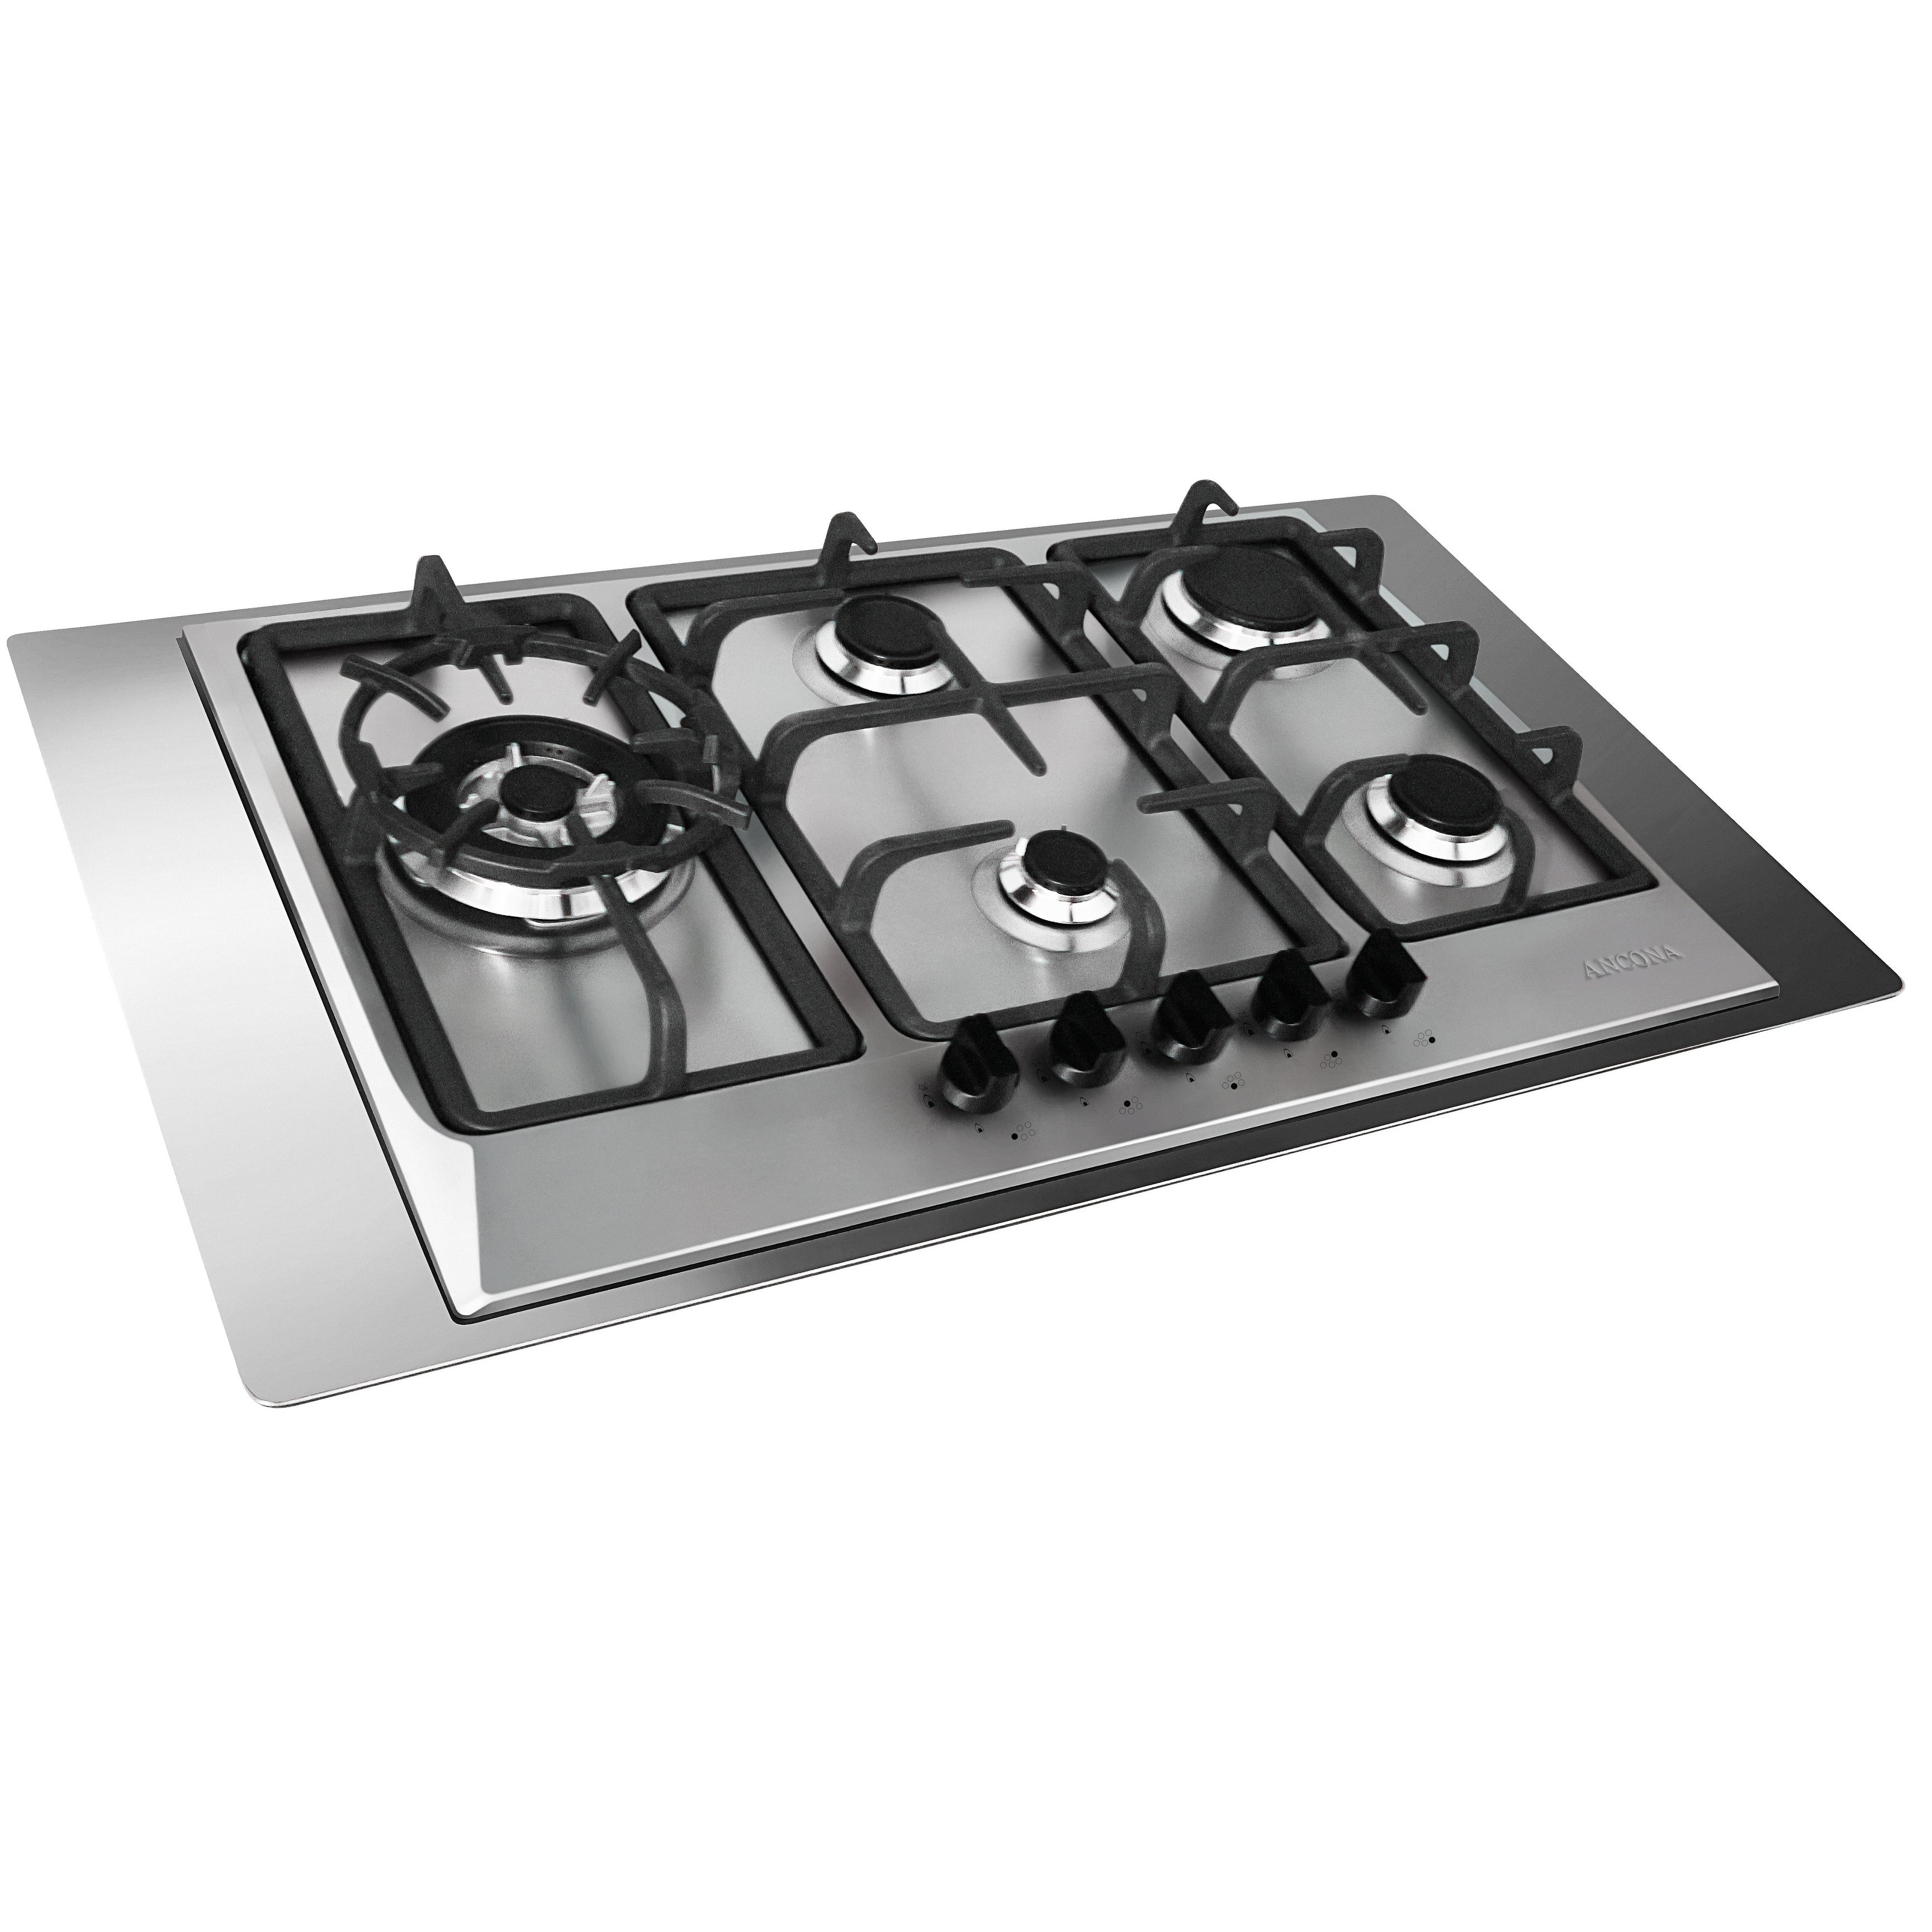 Ancona 30 In Gas Cooktop Stainless Steel With 5 Burners Including Triple Ring Br Burner On Free Shipping Today